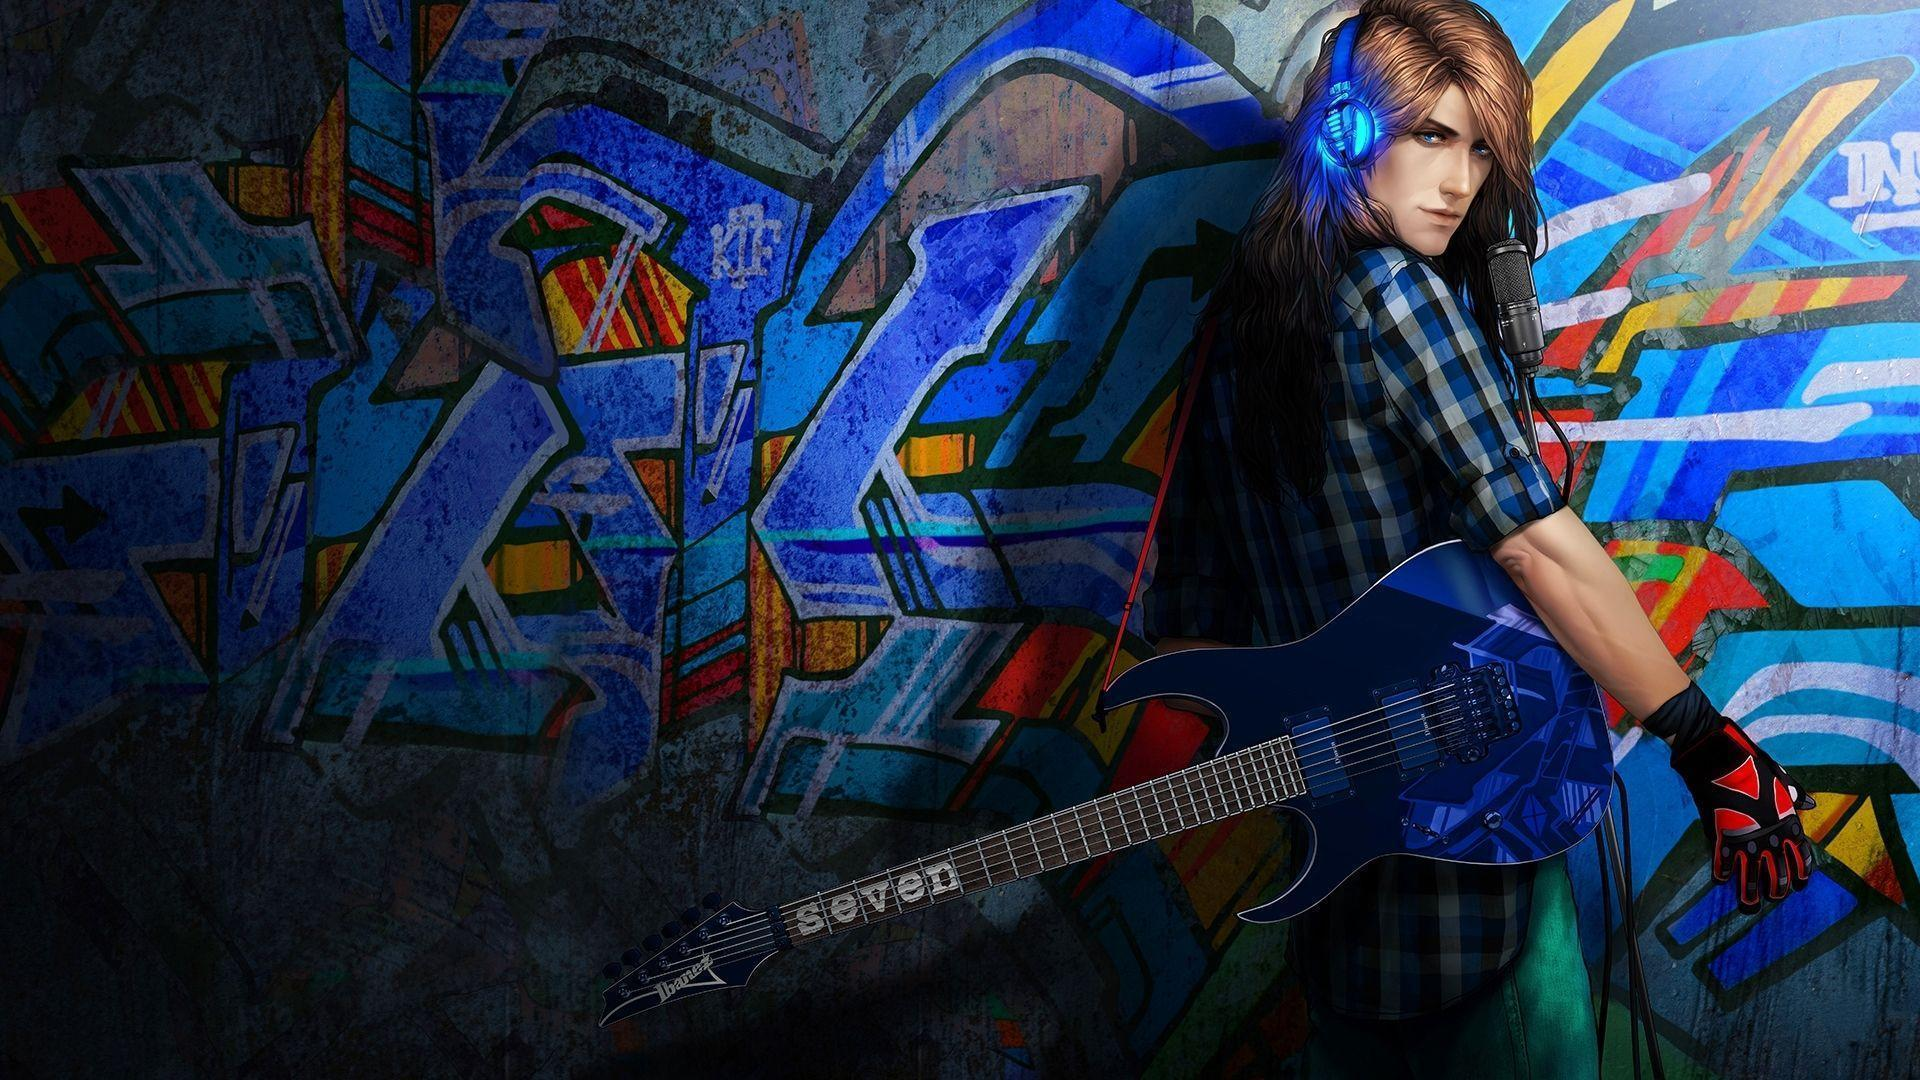 Rock and roll man Graffiti Wallpapers